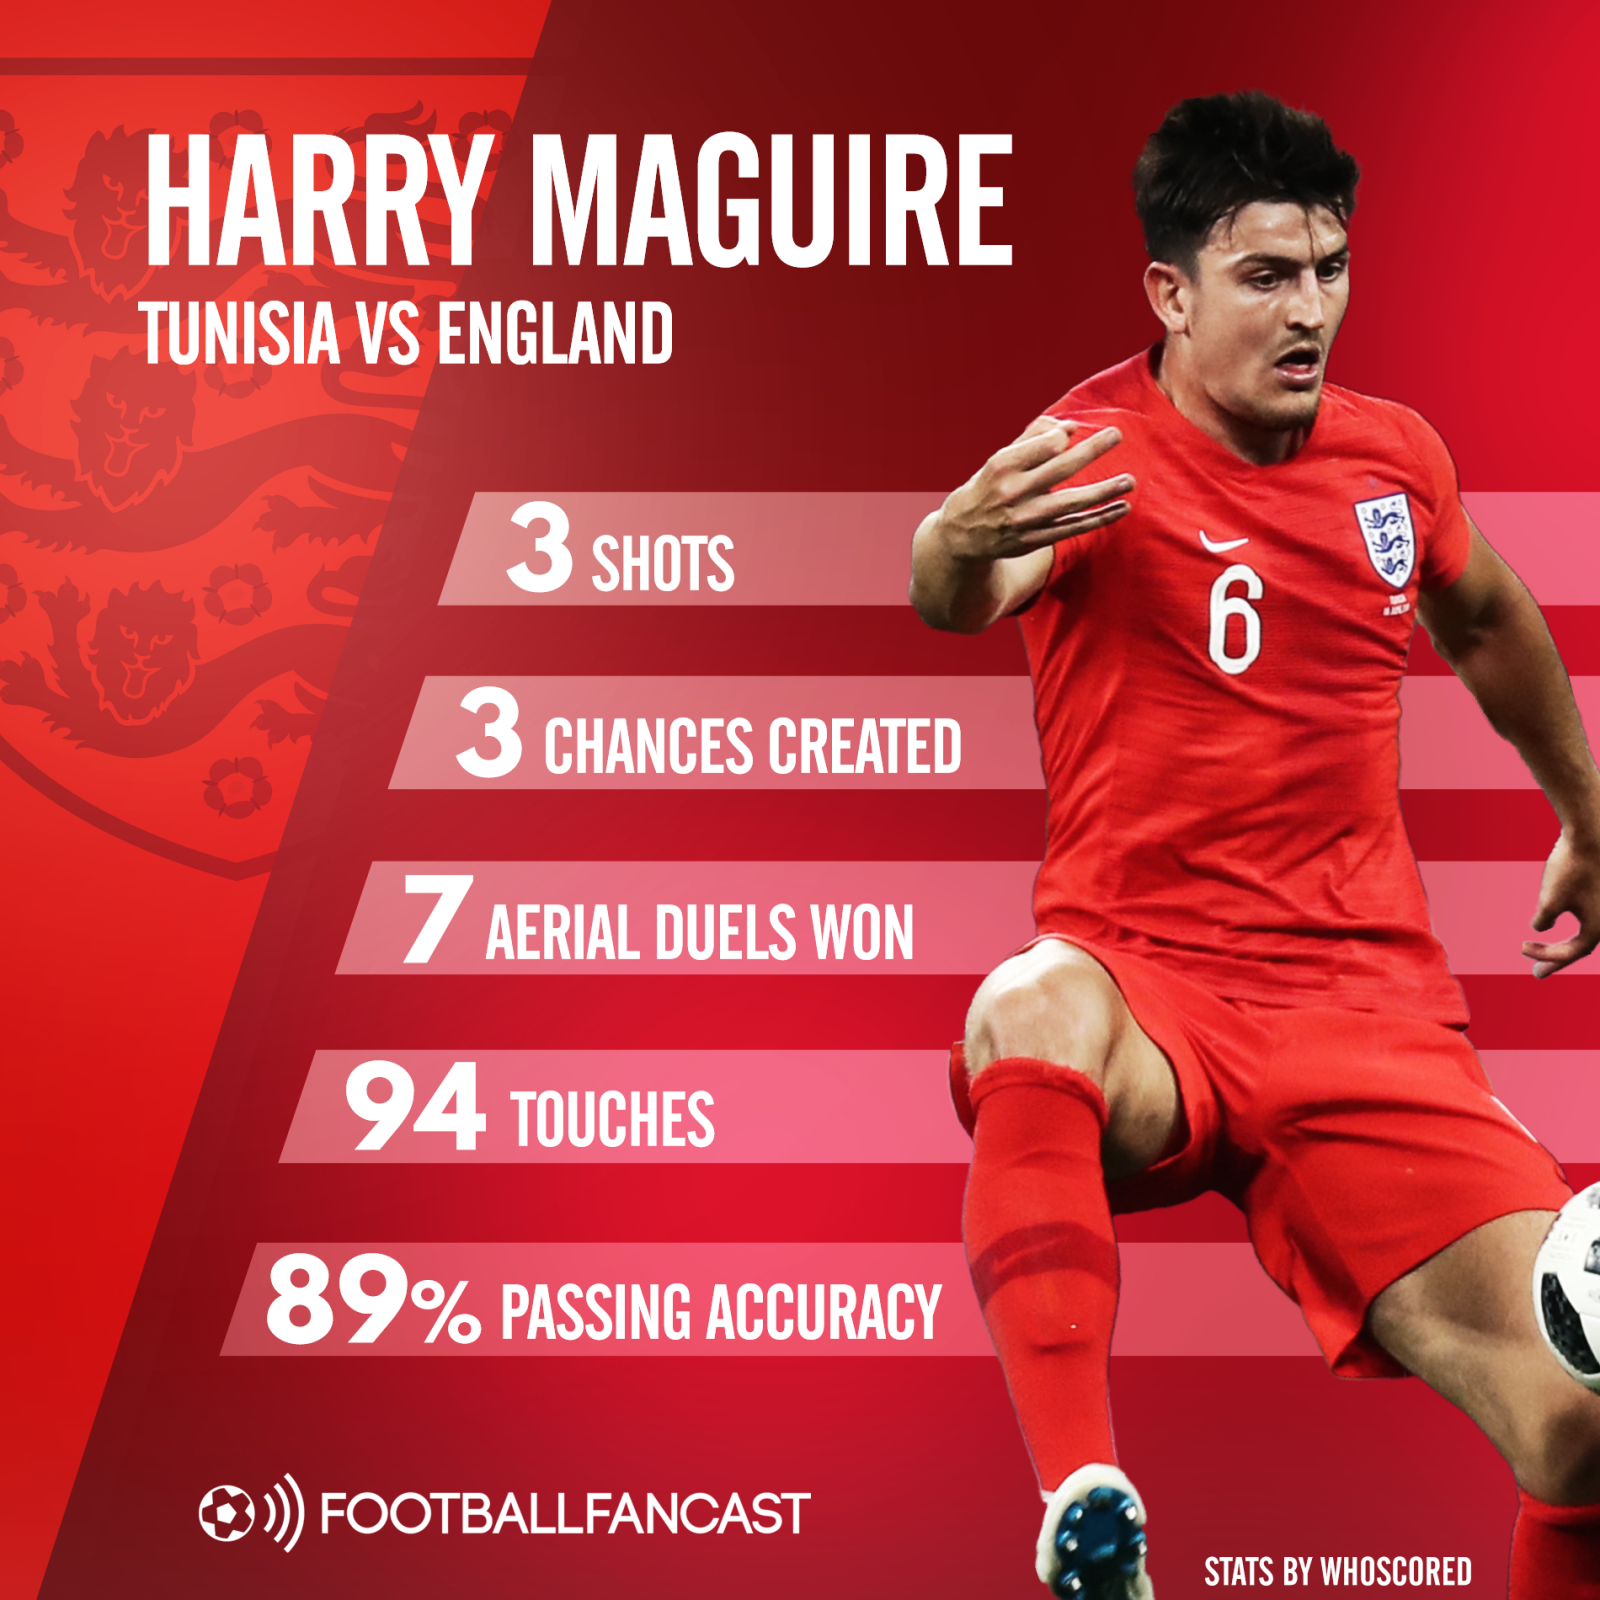 Harry Maguire's stats from England's World Cup win over Tunisia